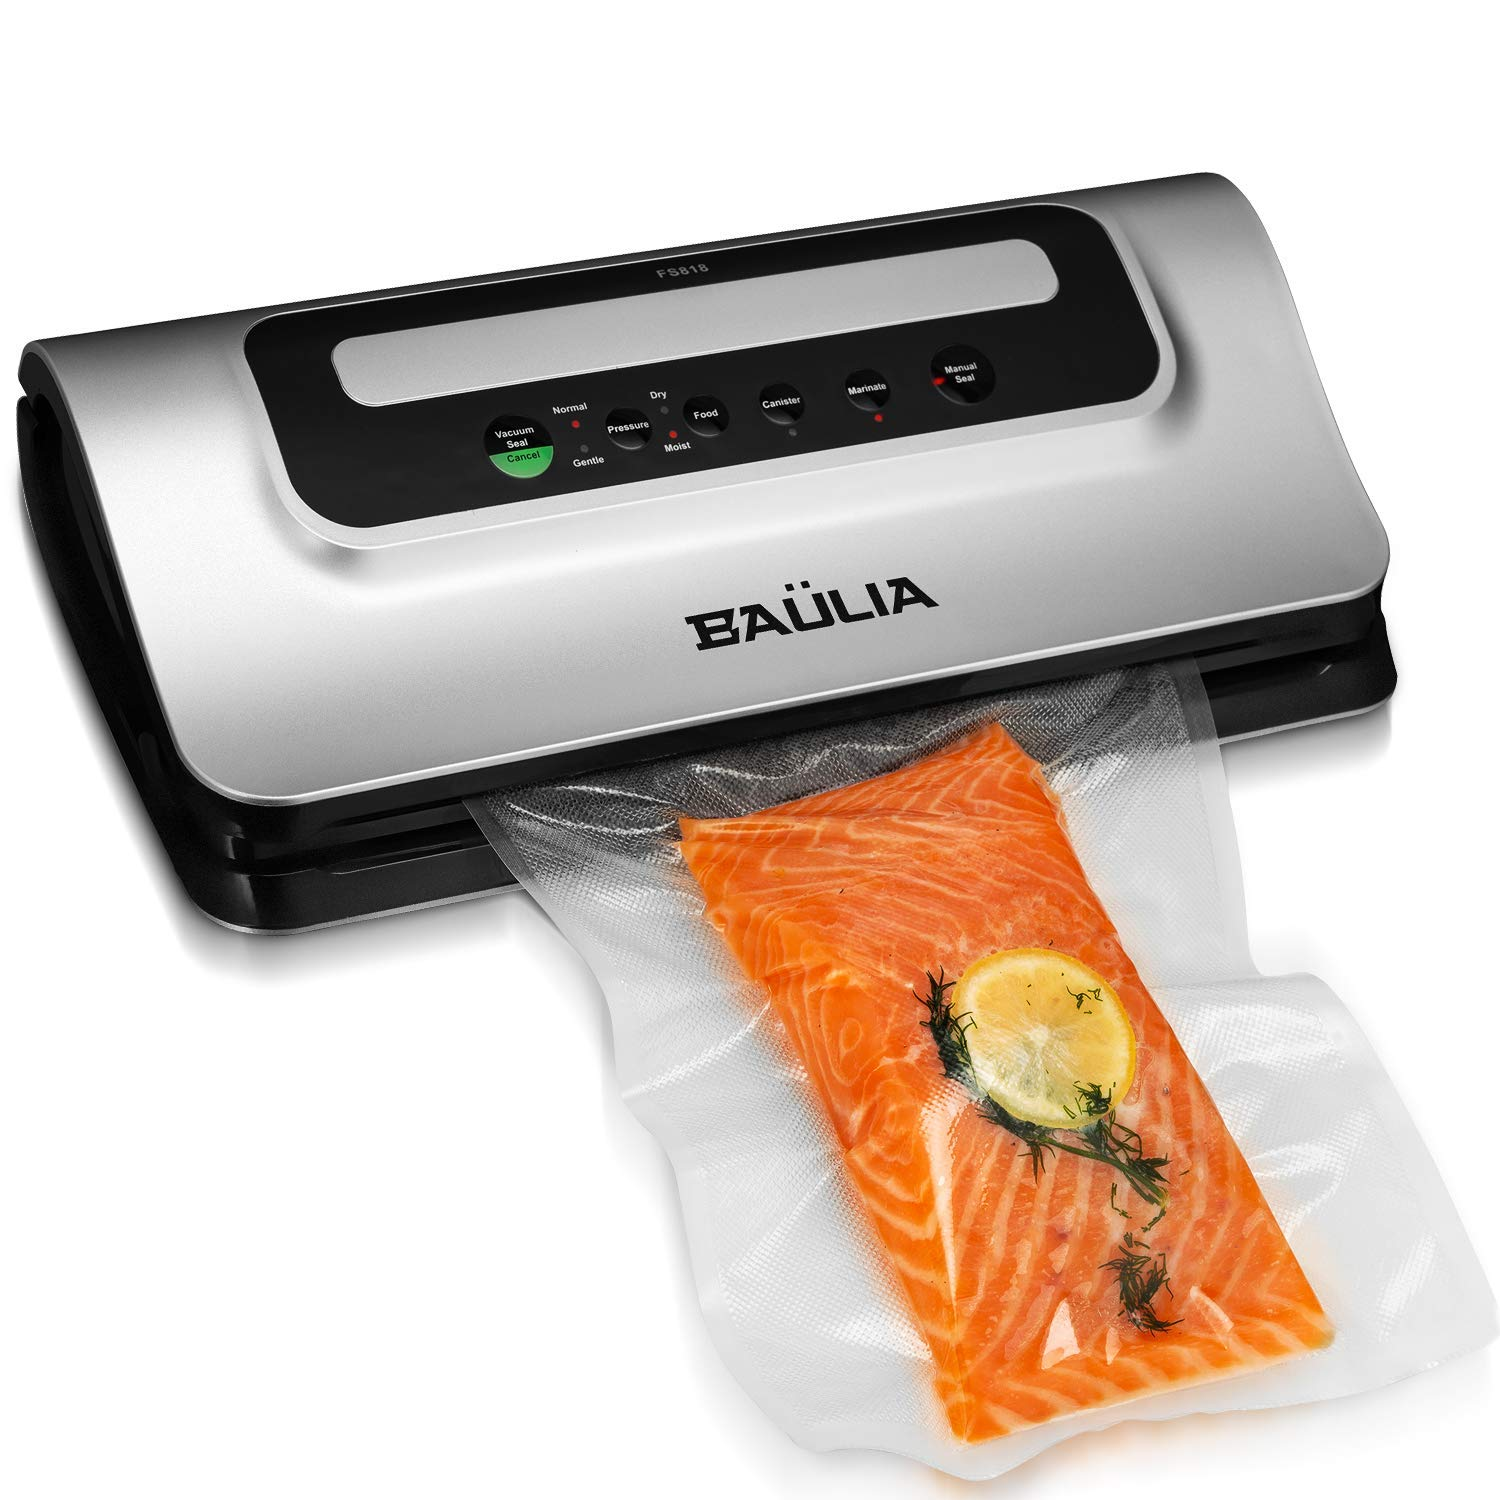 Baulia Automatic Vacuum Food Sealer – Air Sealing Machine for Food Preservation, Compact Design, Silver